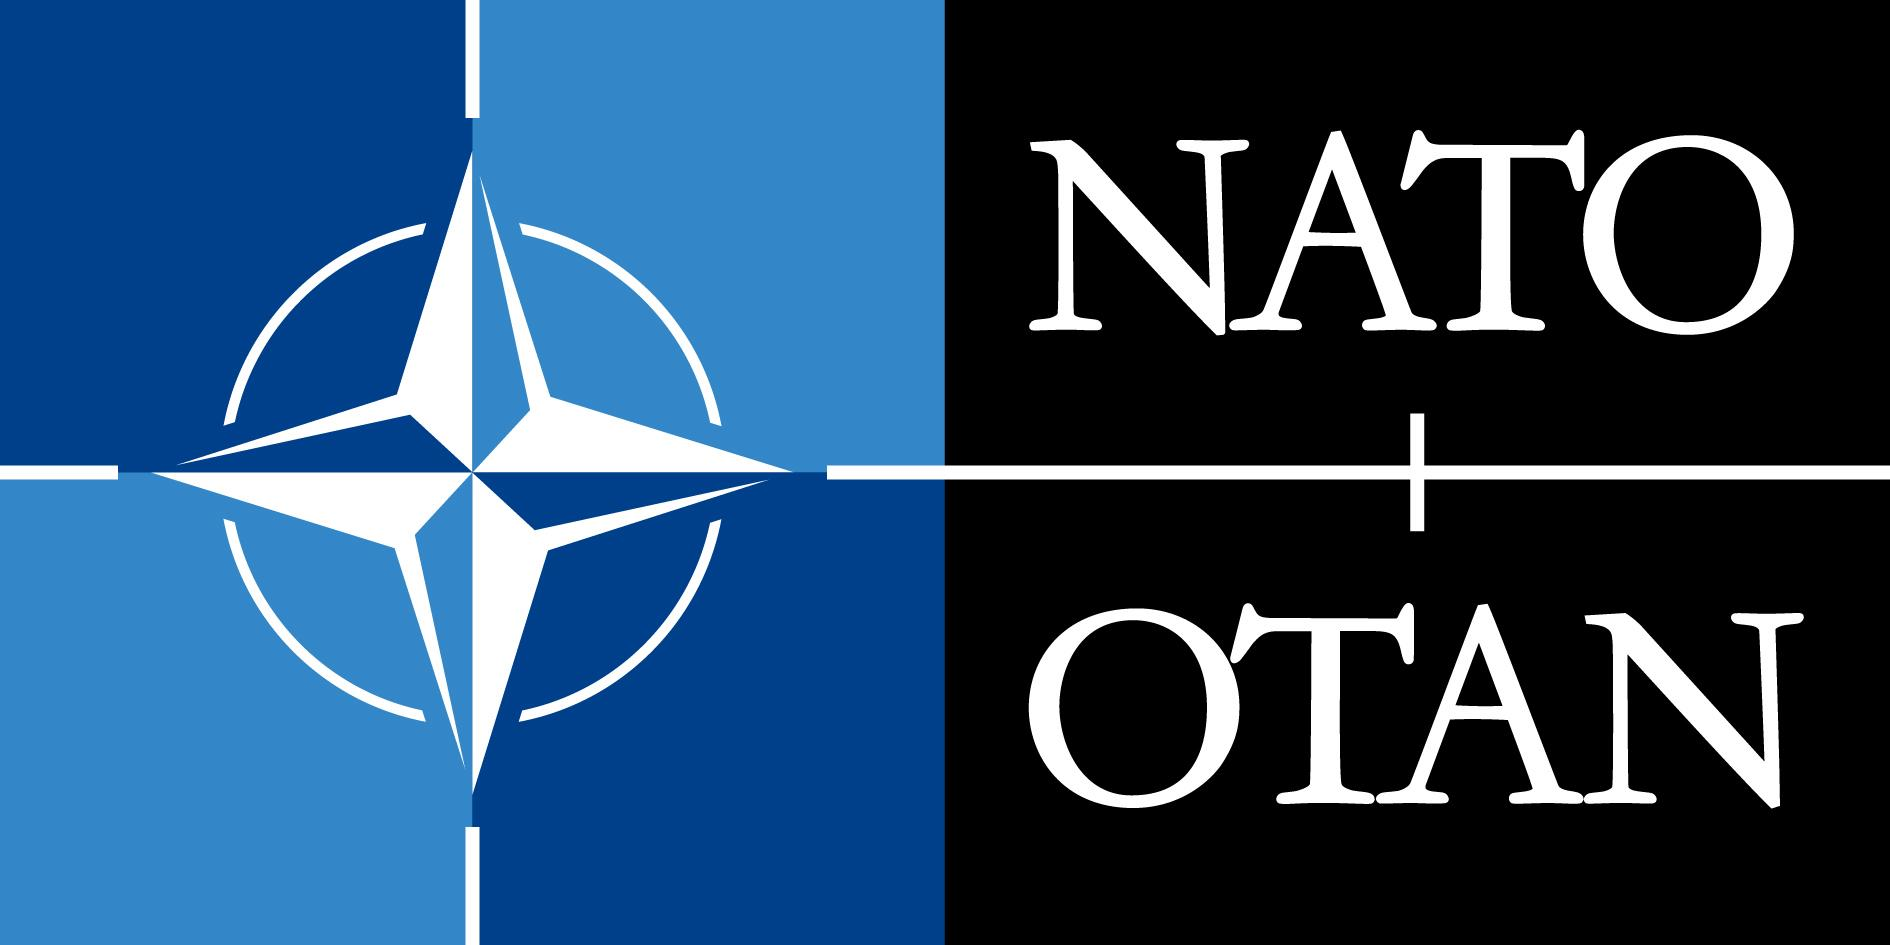 Israel, NATO, and the Disintegration of the Middle East